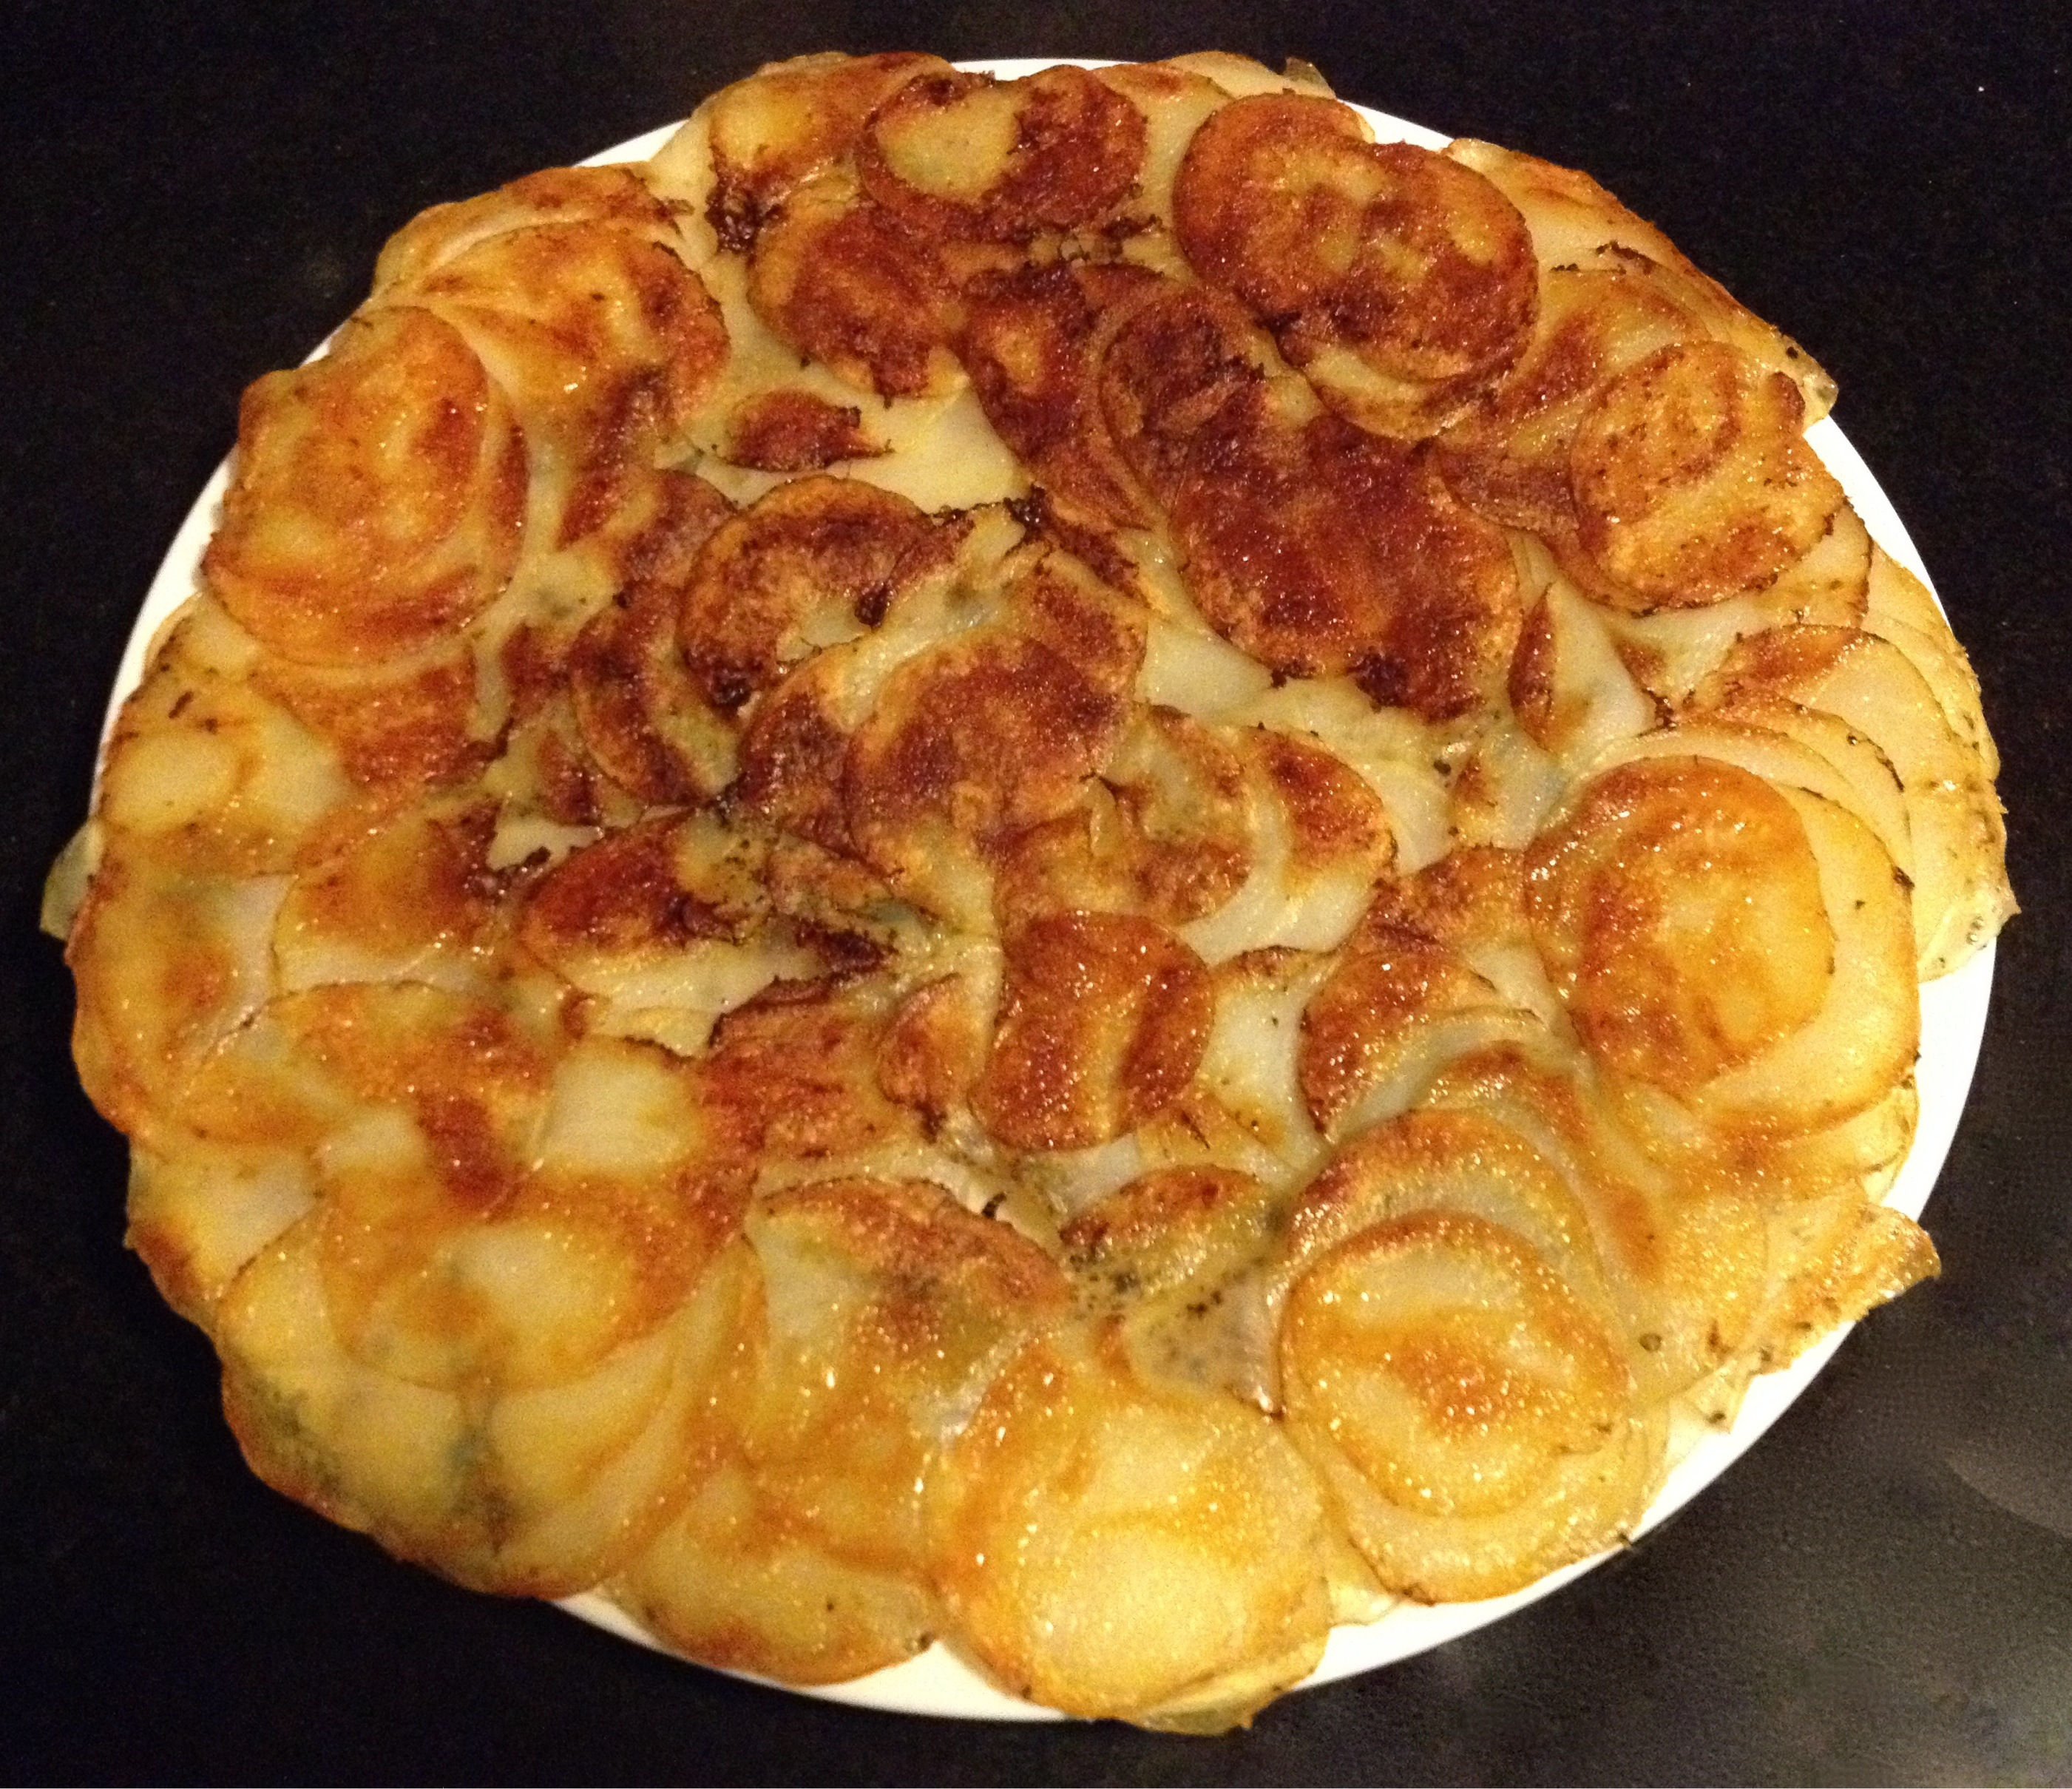 Potato gallette or Potatoes Mary, browned and crispy.